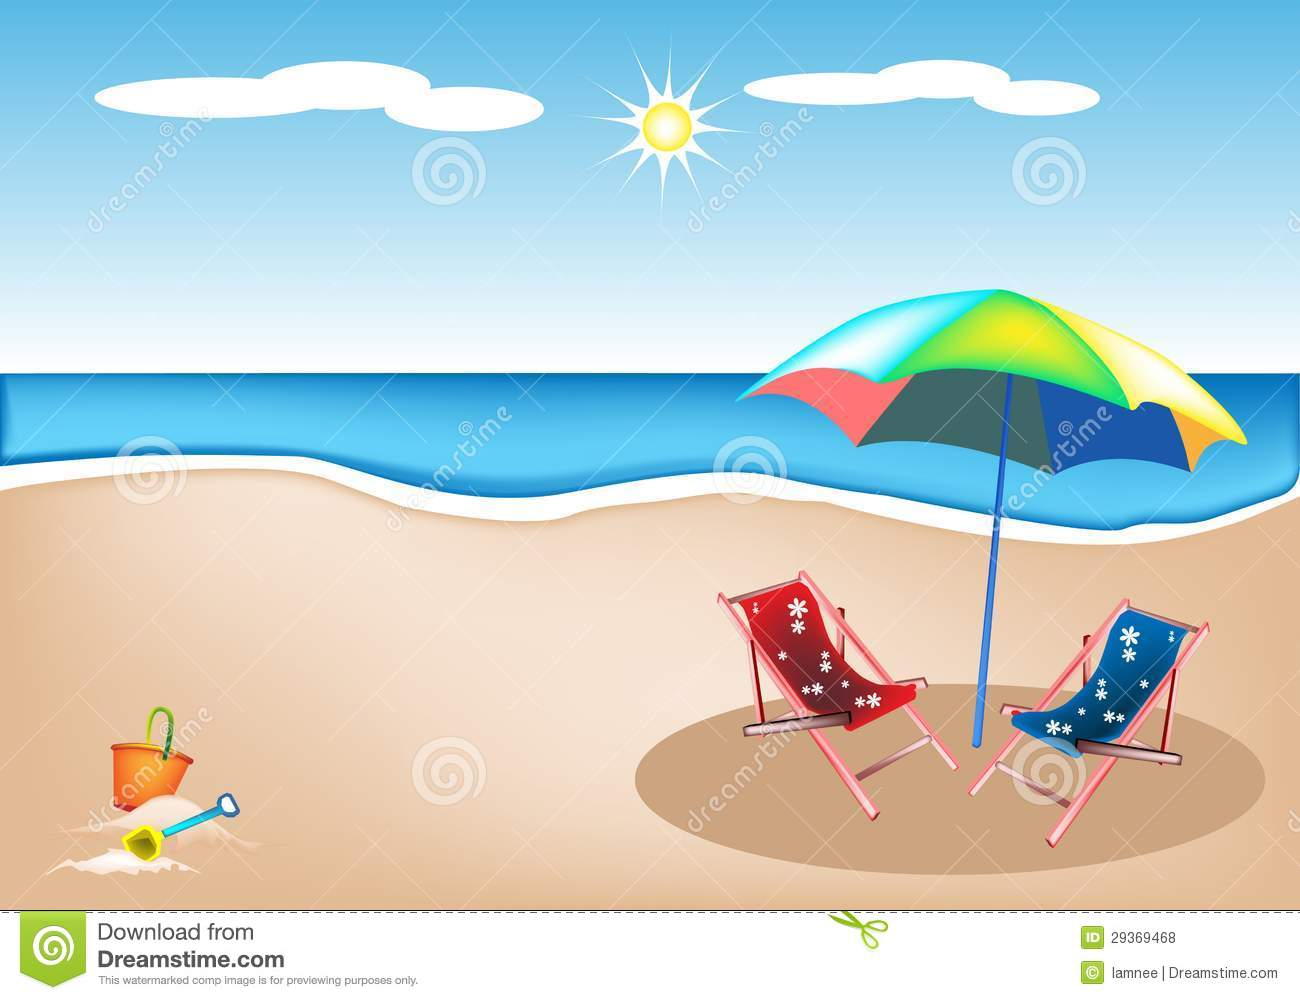 Illustration Beach Chairs With Umbrella And Toy Royalty Free Stock s Image